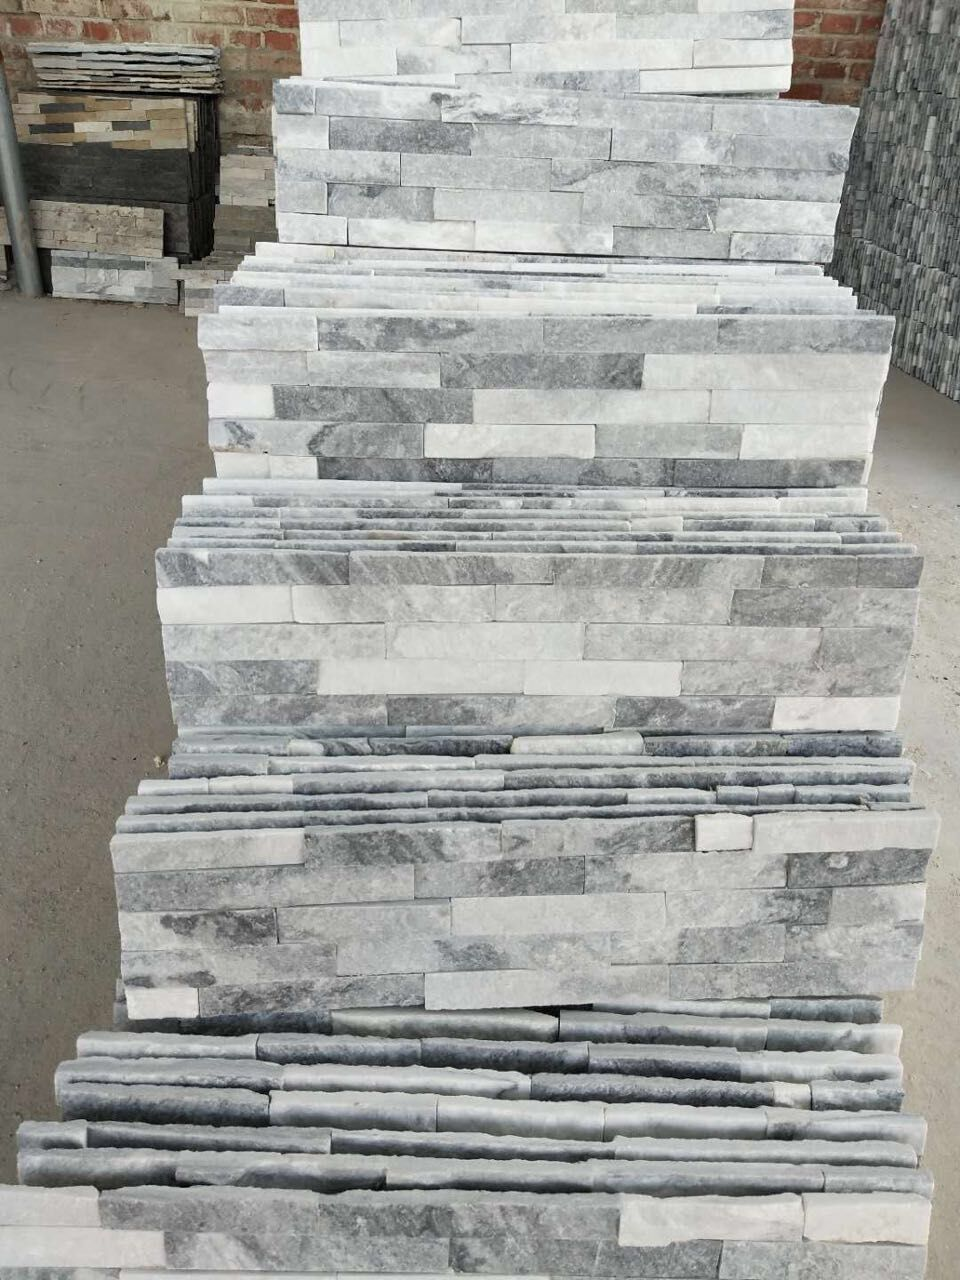 stone wall panel outdoor,natural stone wall panel,stone interior wall panel,light stone panel,stacked stone panel,stone panel decorative,stone wall panel cladding